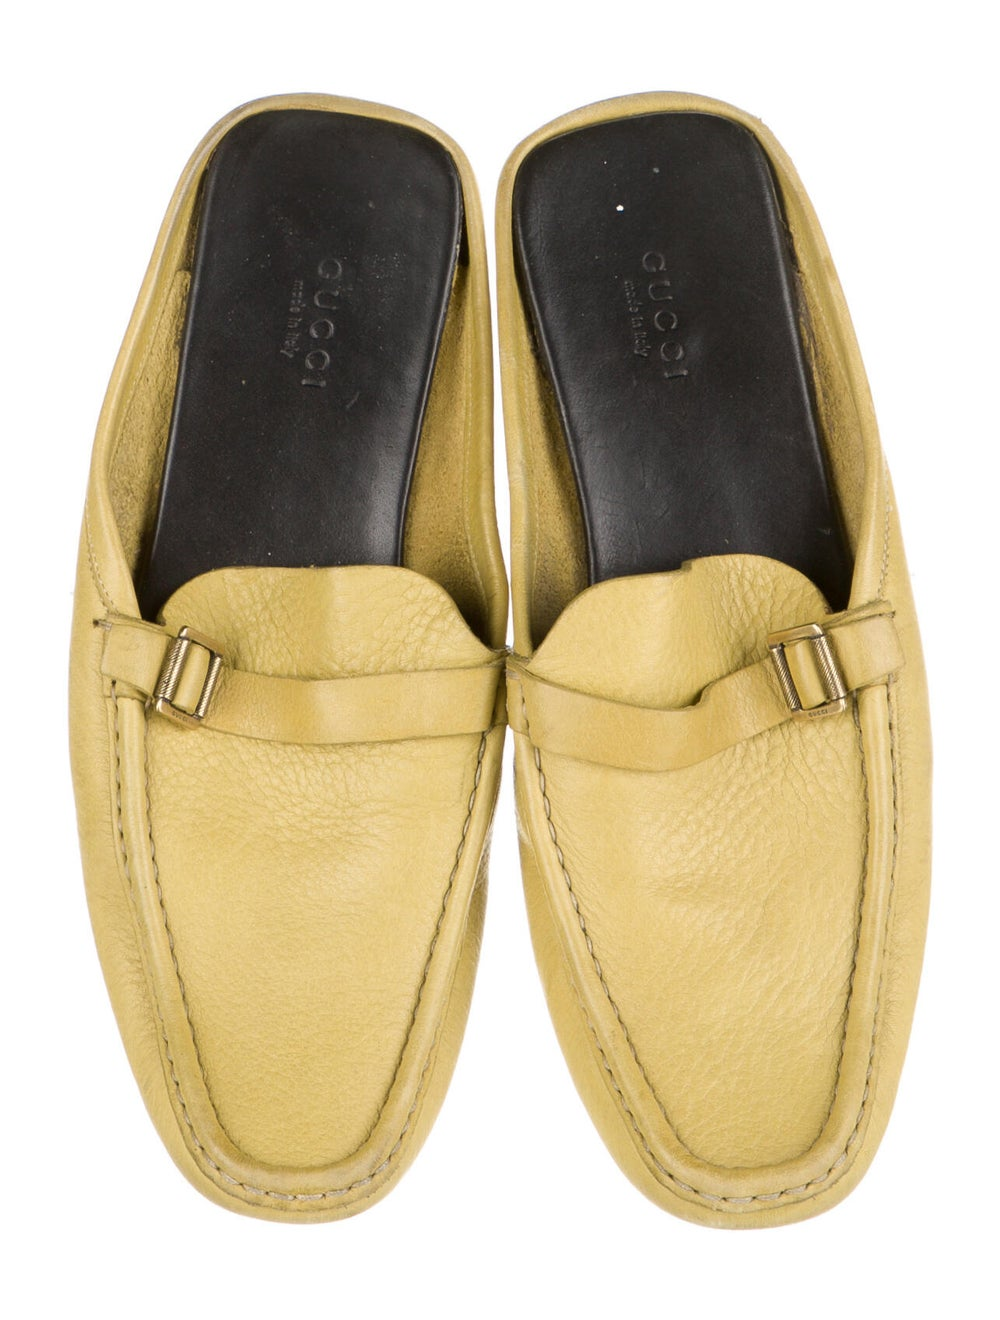 Gucci Leather Mules Yellow - image 3